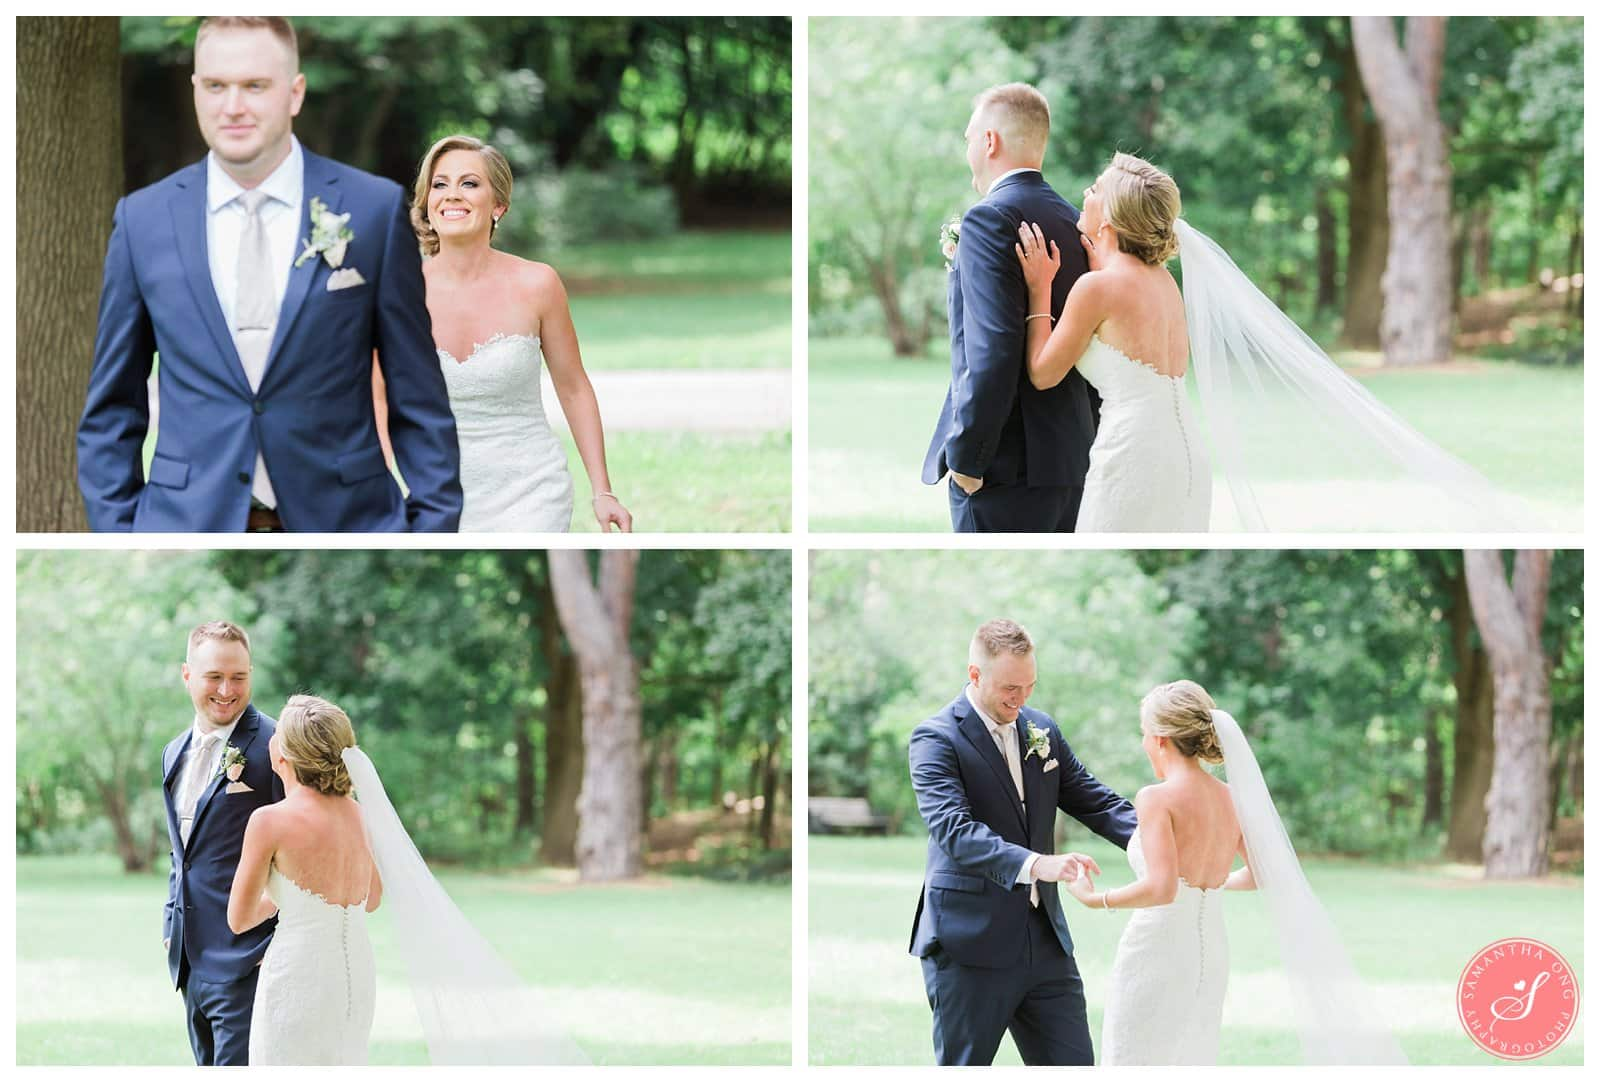 Captivating Look Five Reasons Why Wedding Photography Tips Look Wedding S Photos Styles Ideas 2018 Look Wedding Look Wedding Dinosaur wedding First Look Wedding